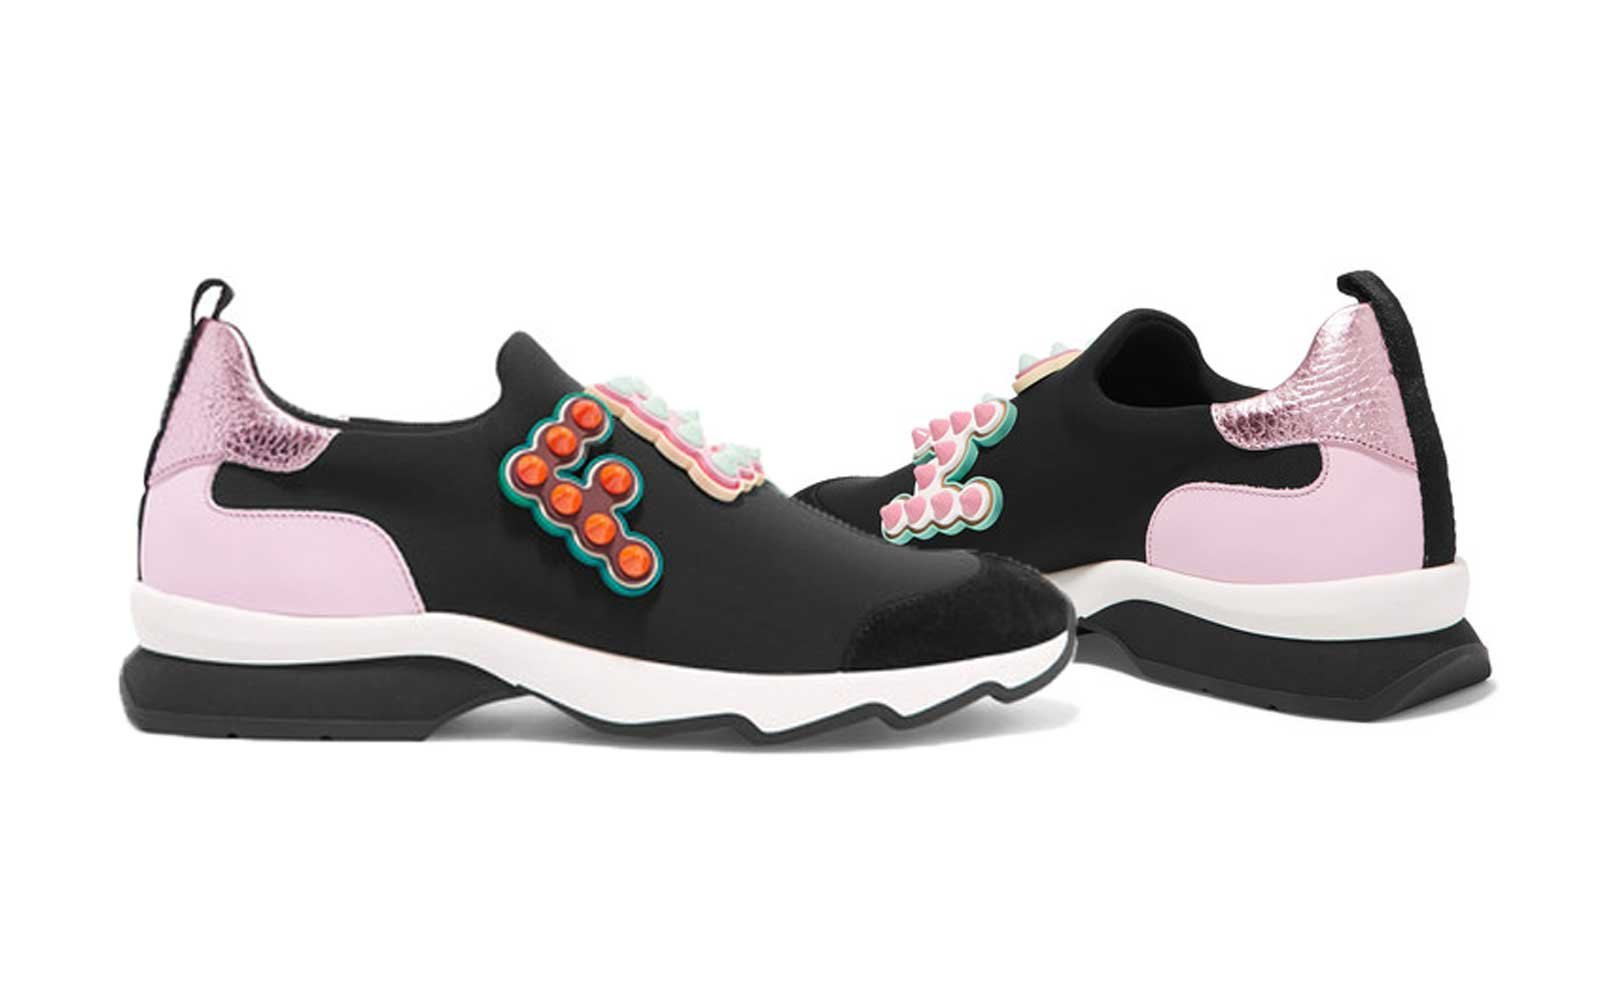 Rome Fendi Neoprene Sneakers